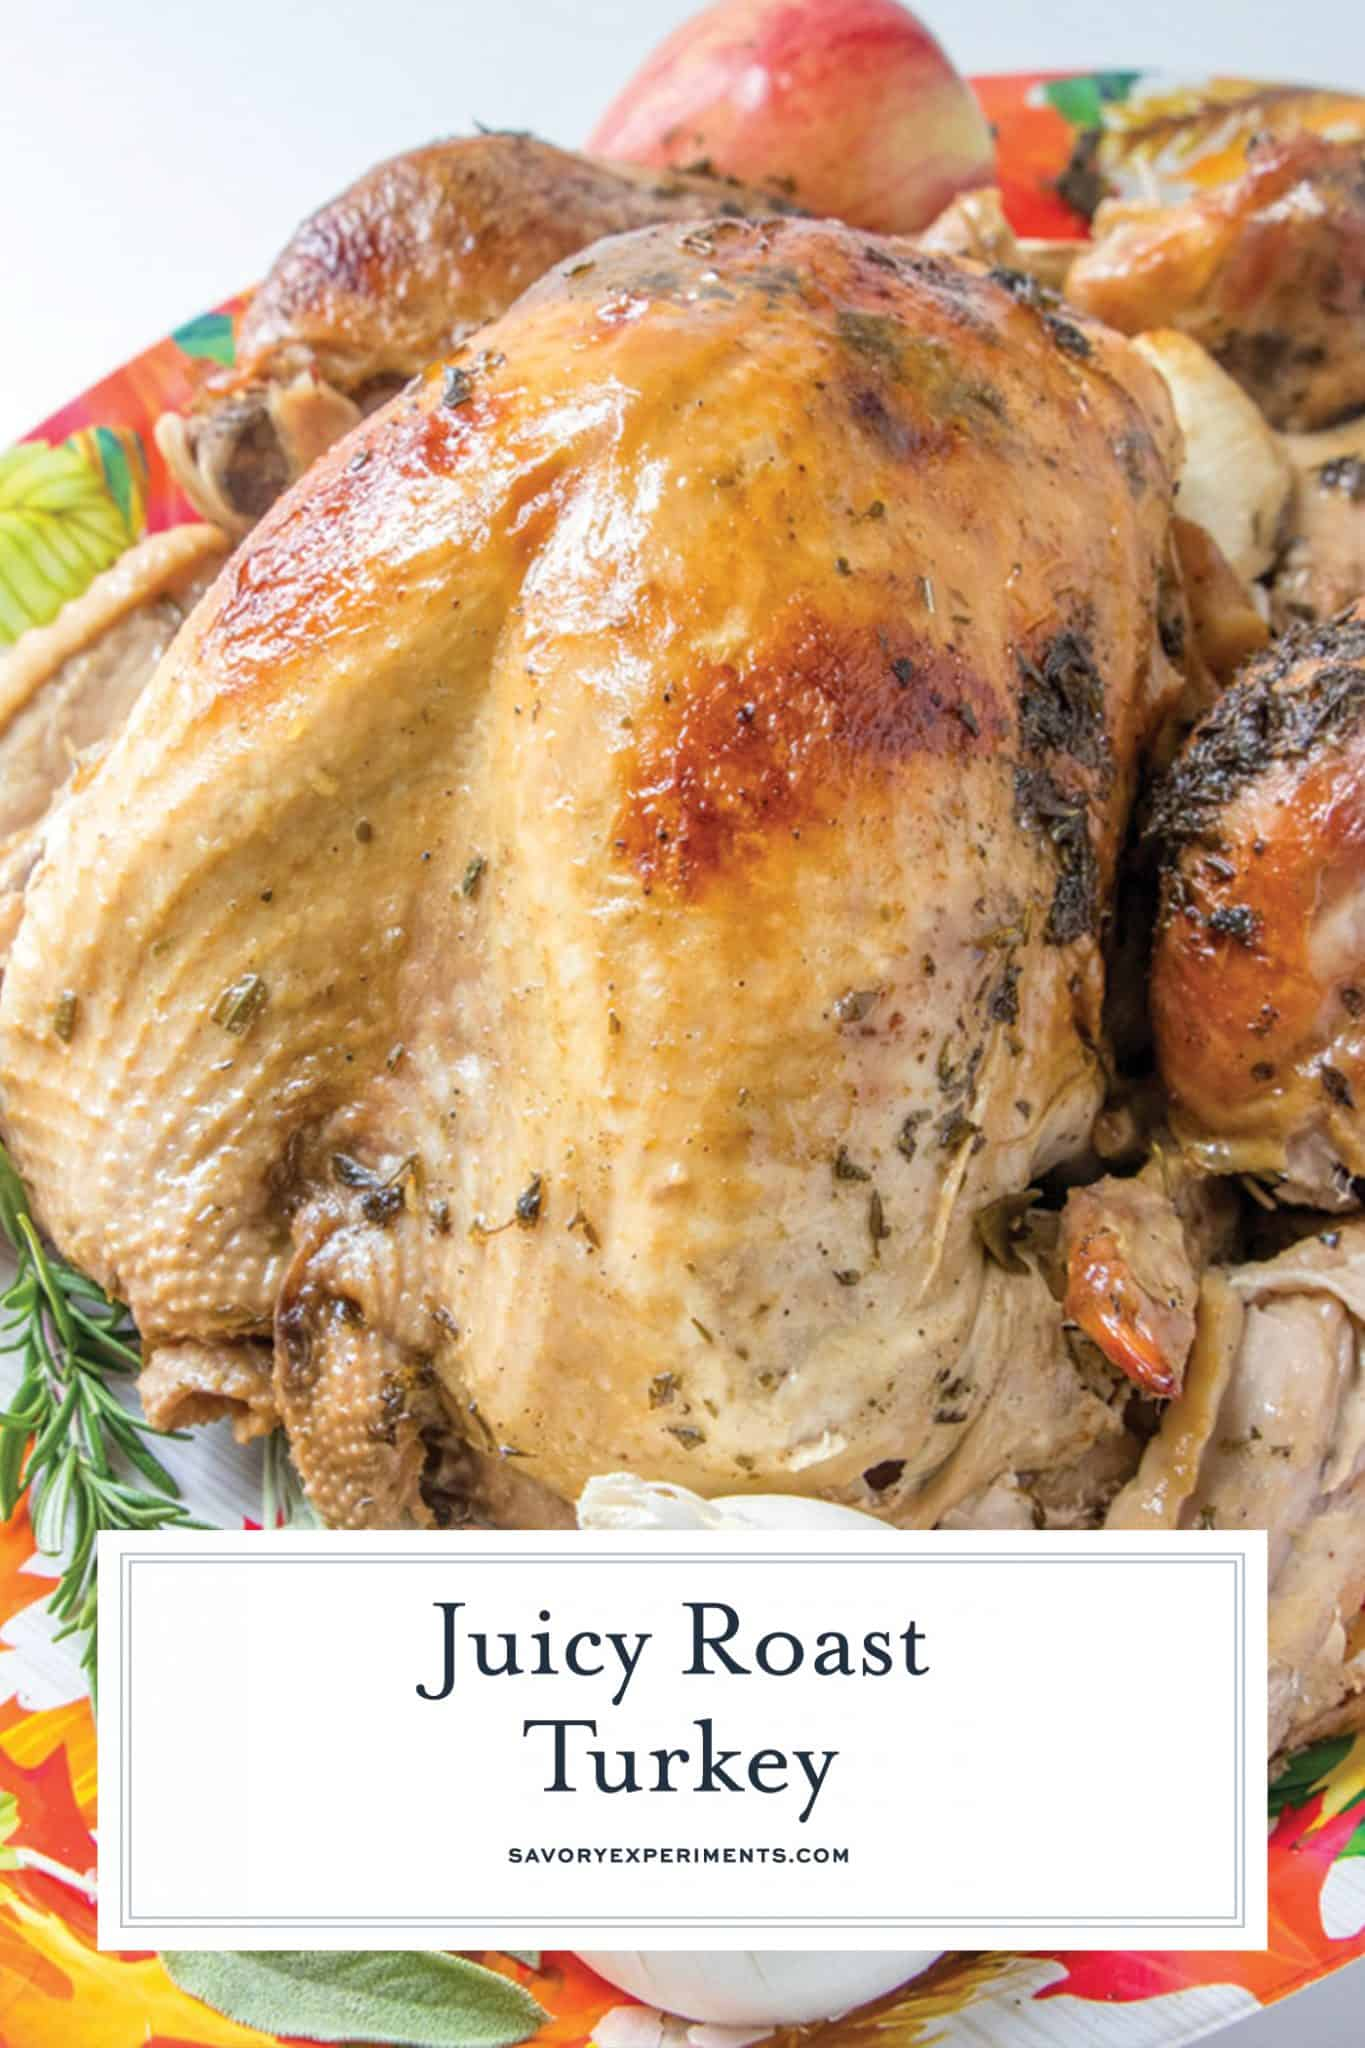 Juicy Roast Turkey is easier than you think with my buttery recipe, a bottle of bubbles and fresh herbs.The best juicy turkey recipe ever! #juicyroastturkey #bestturkeyrecipe #thanksgivingturkey www.savoryexperiments.com